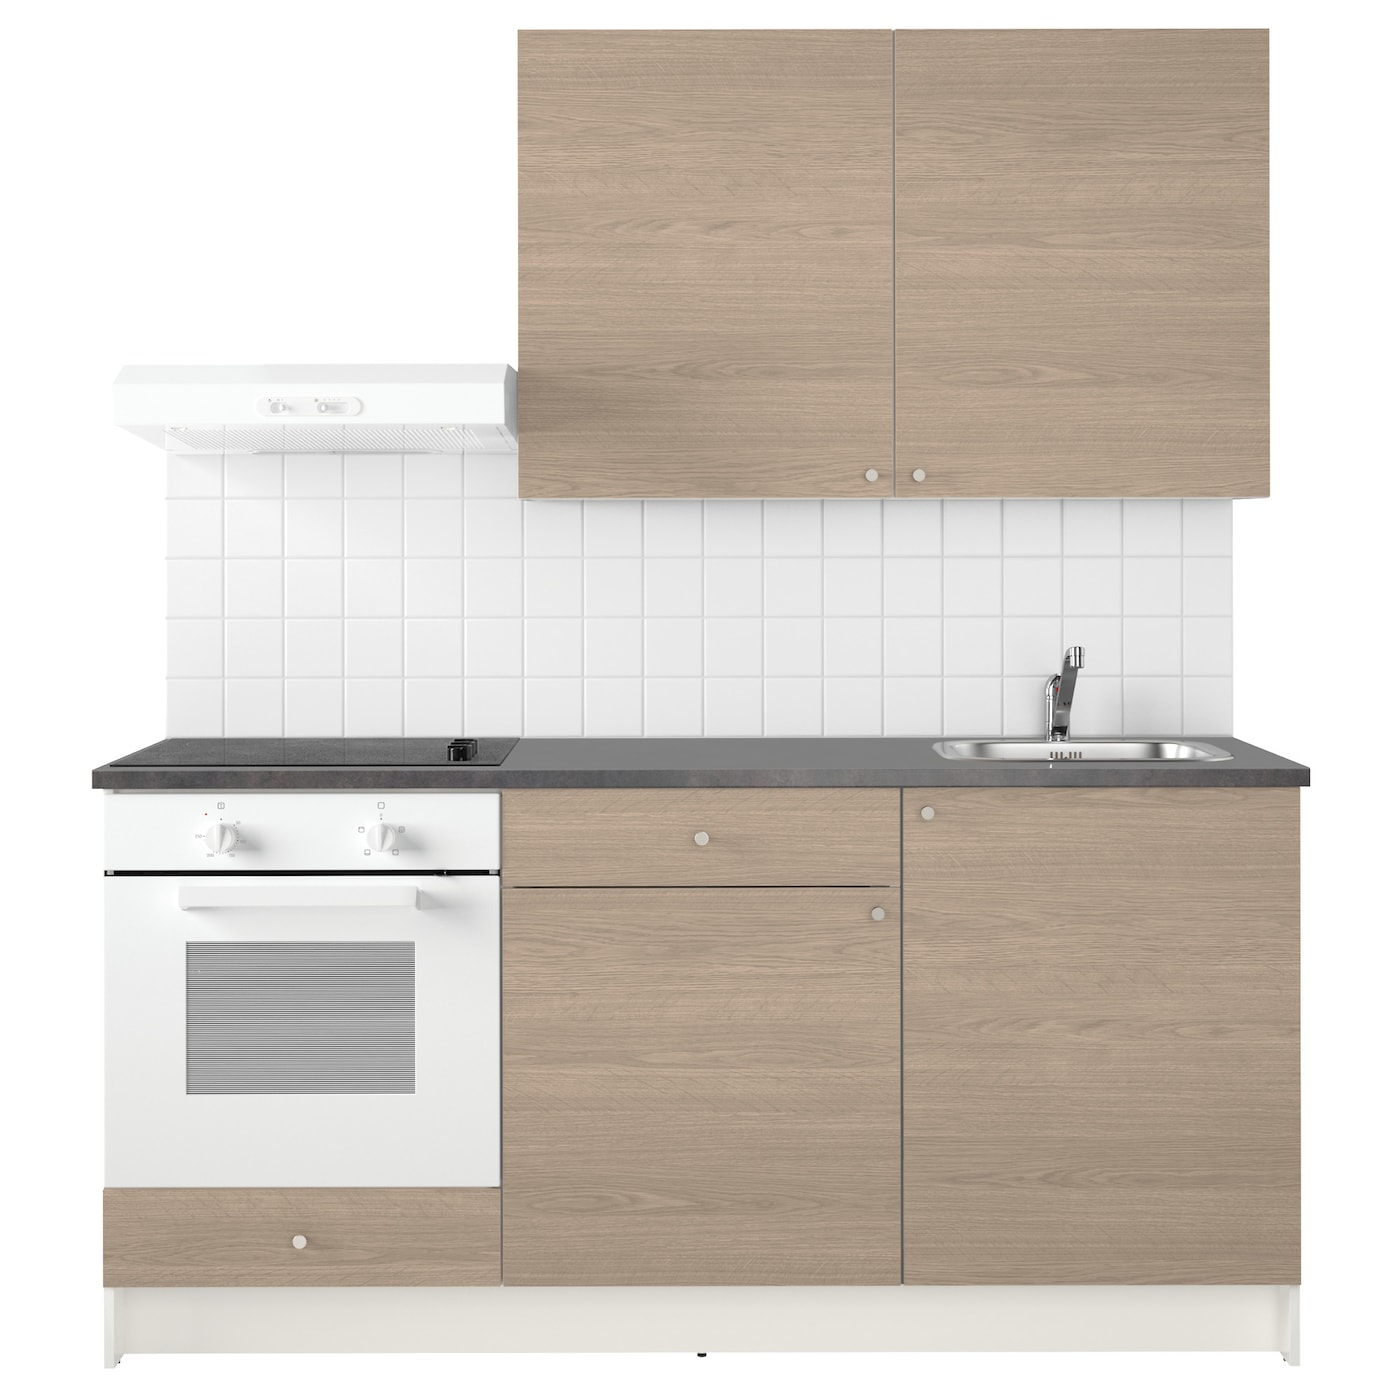 knoxhult kitchen wood effect grey 180 x 61 x 220 cm ikea. Black Bedroom Furniture Sets. Home Design Ideas